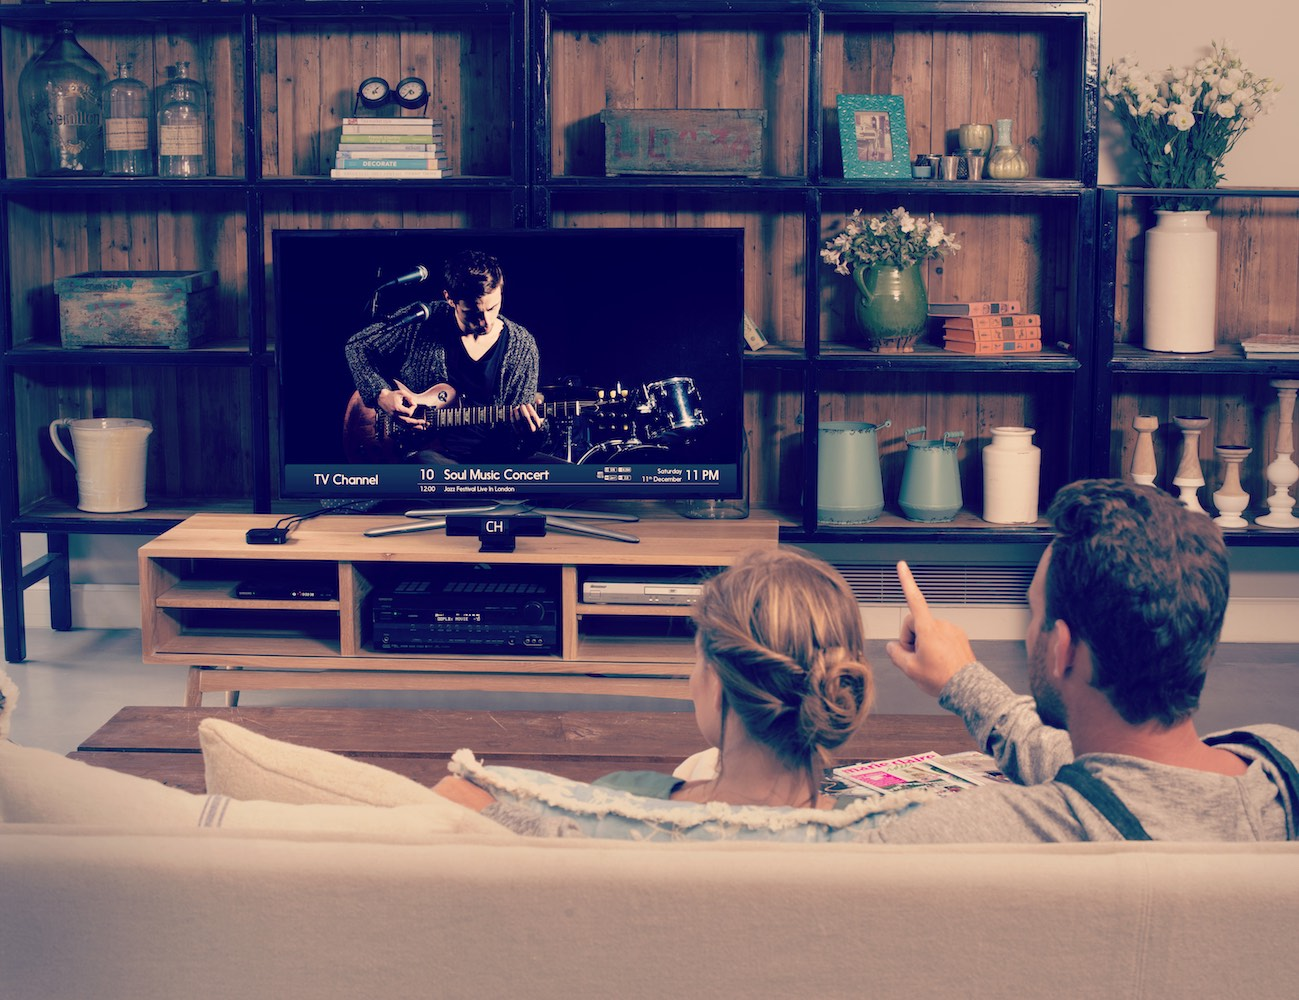 singlecue-gesture-control-for-your-home-entertainment-devices-03